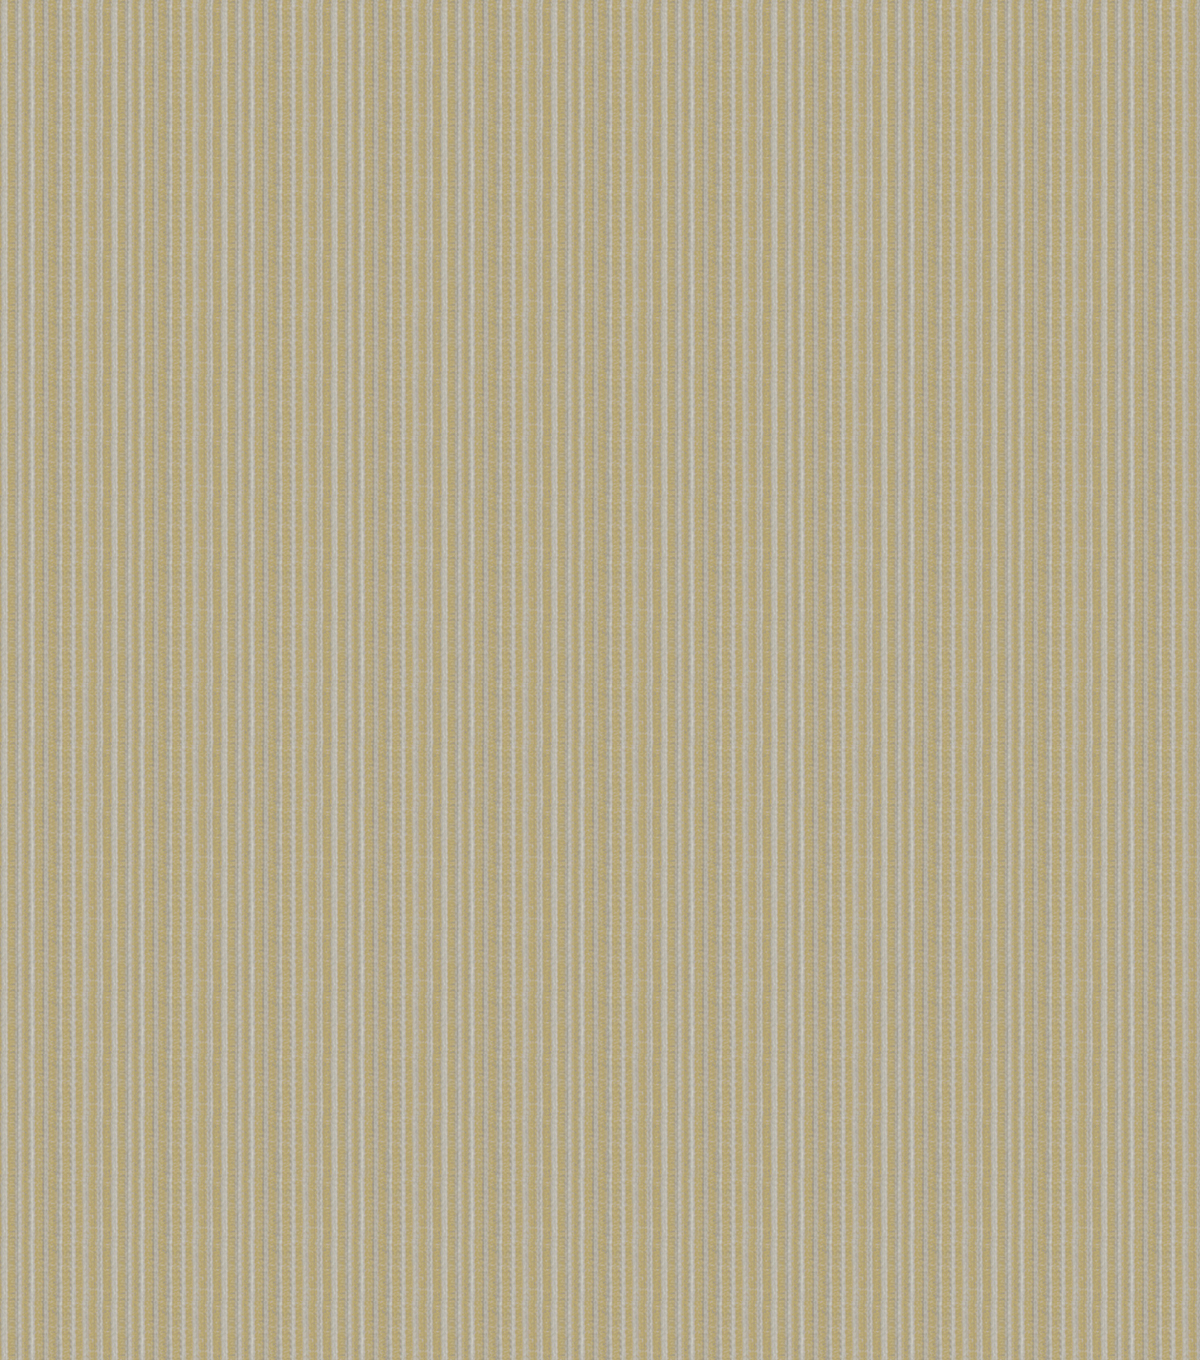 Home Decor 8x8 Fabric Swatch-Eaton Square Whitaker Silver Sage